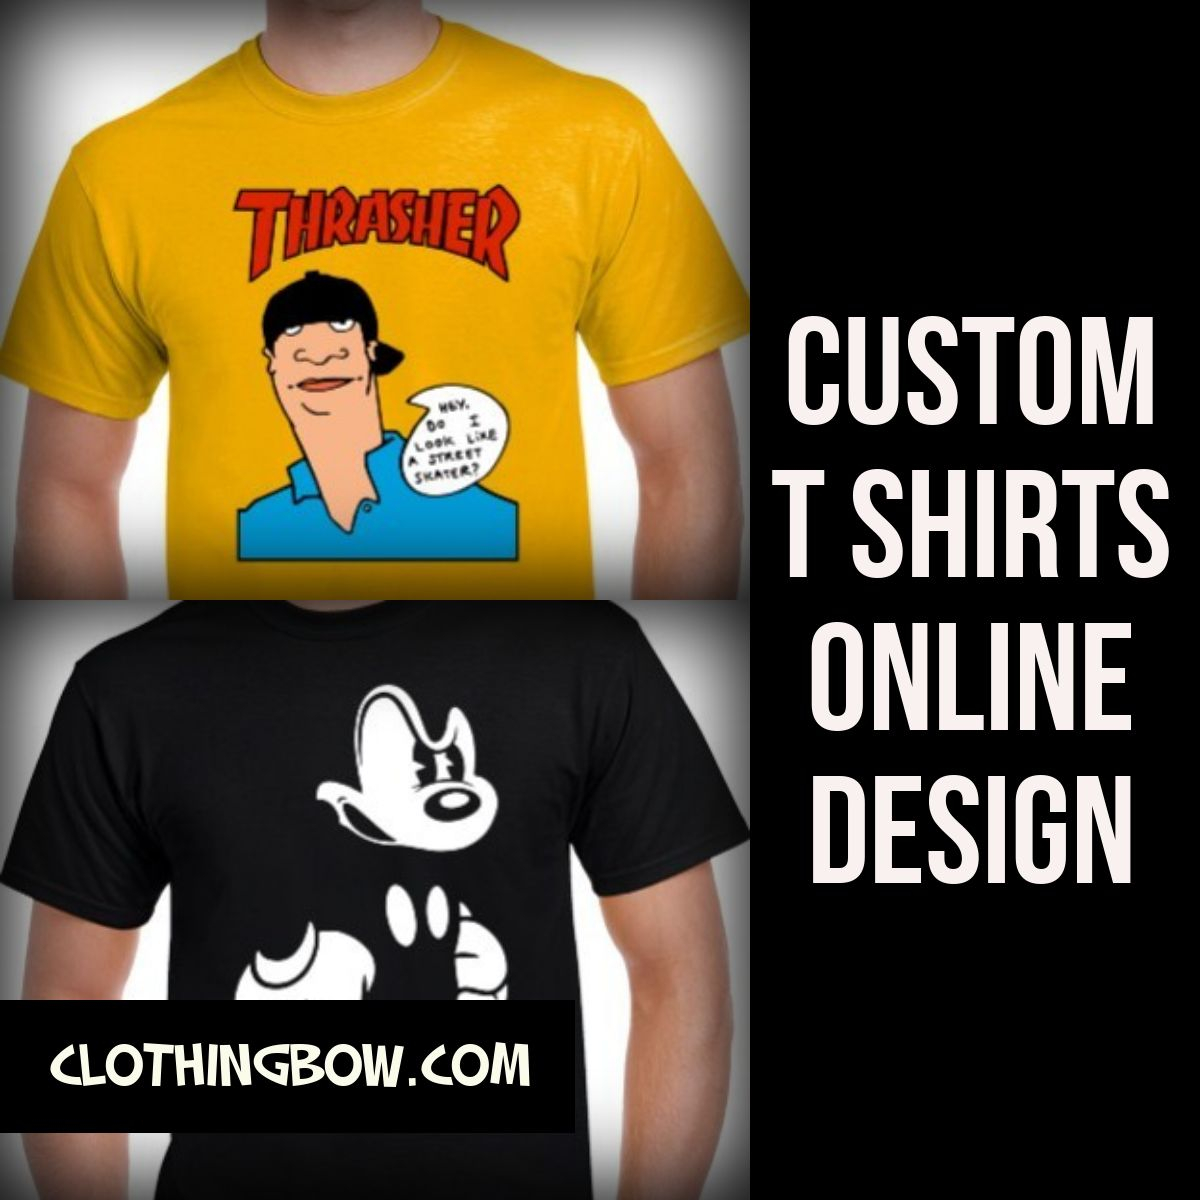 Custom T Shirts Printing Near Me – ART4GALLERY